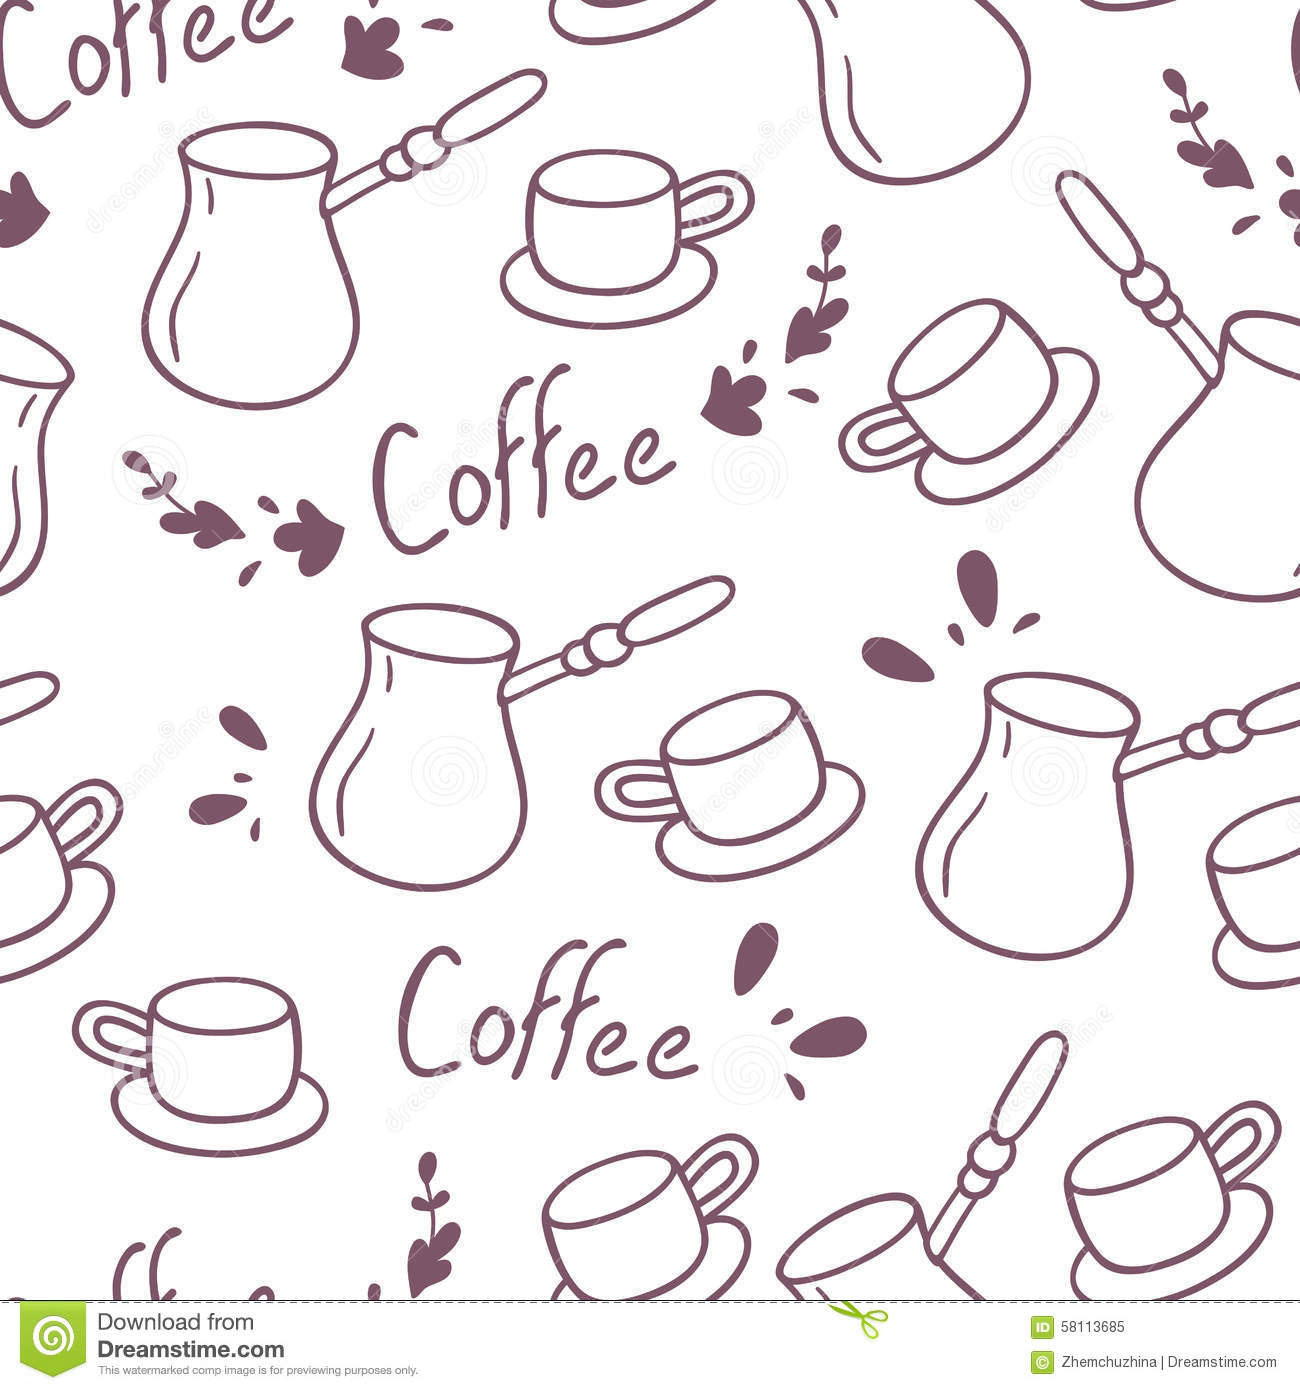 seamless doodle coffee pattern - photo #29